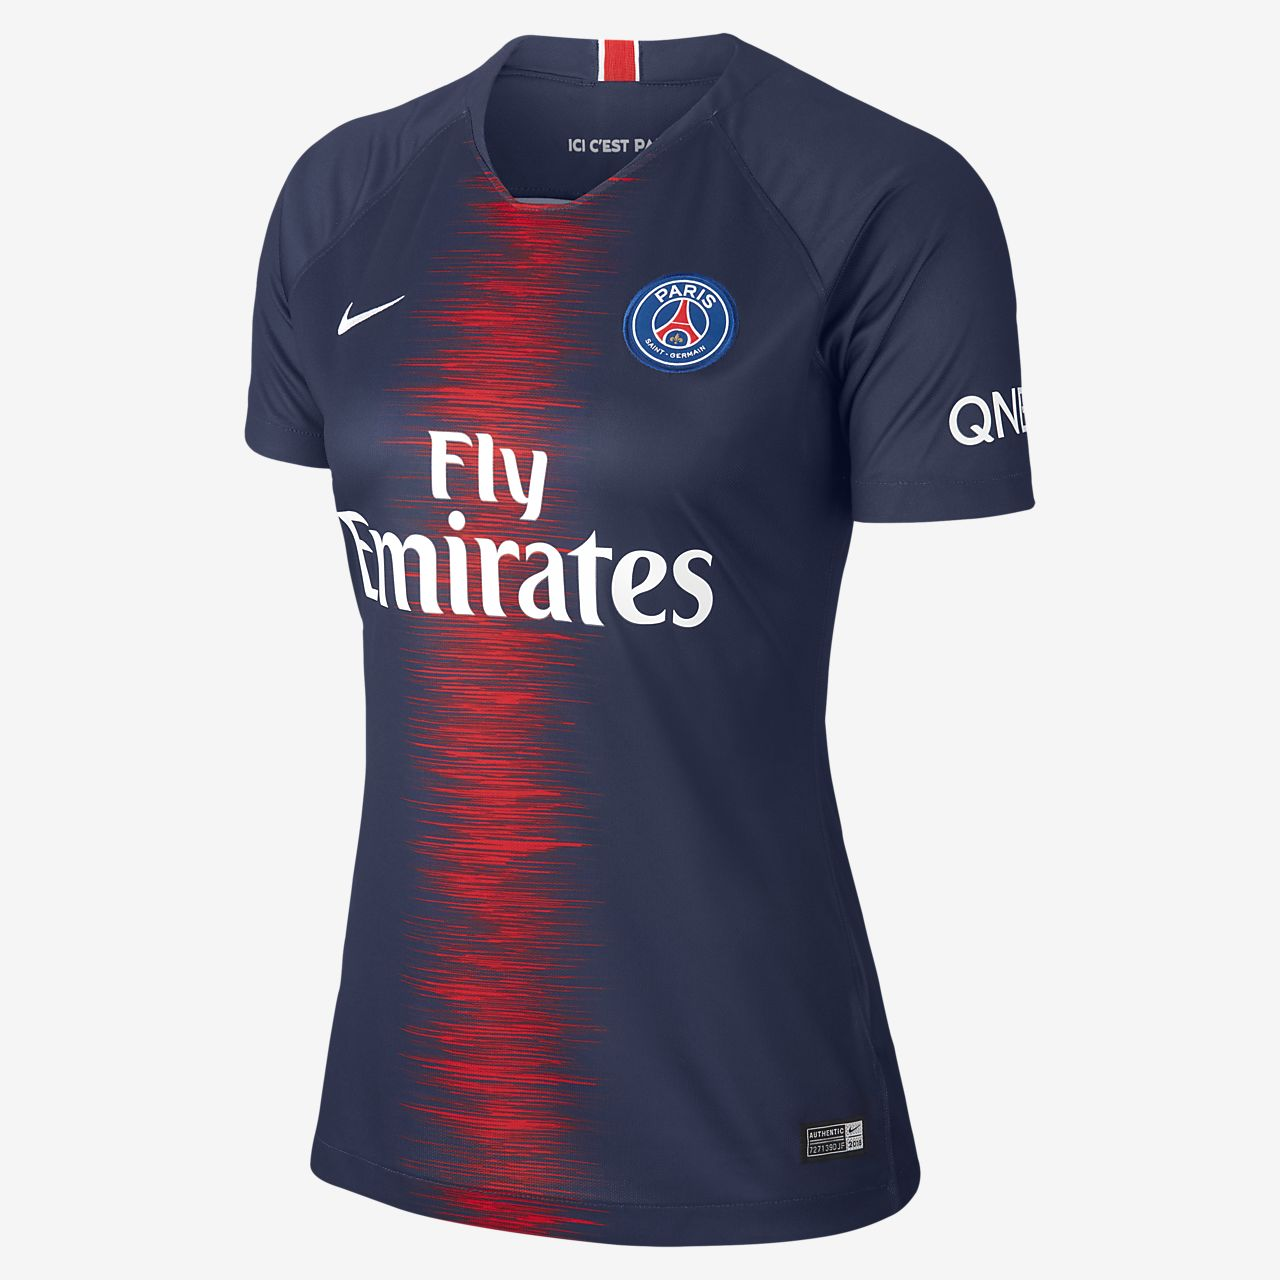 36d3ea5693d25 ... Camiseta de fútbol para mujer 2018 19 Paris Saint-Germain Stadium Home